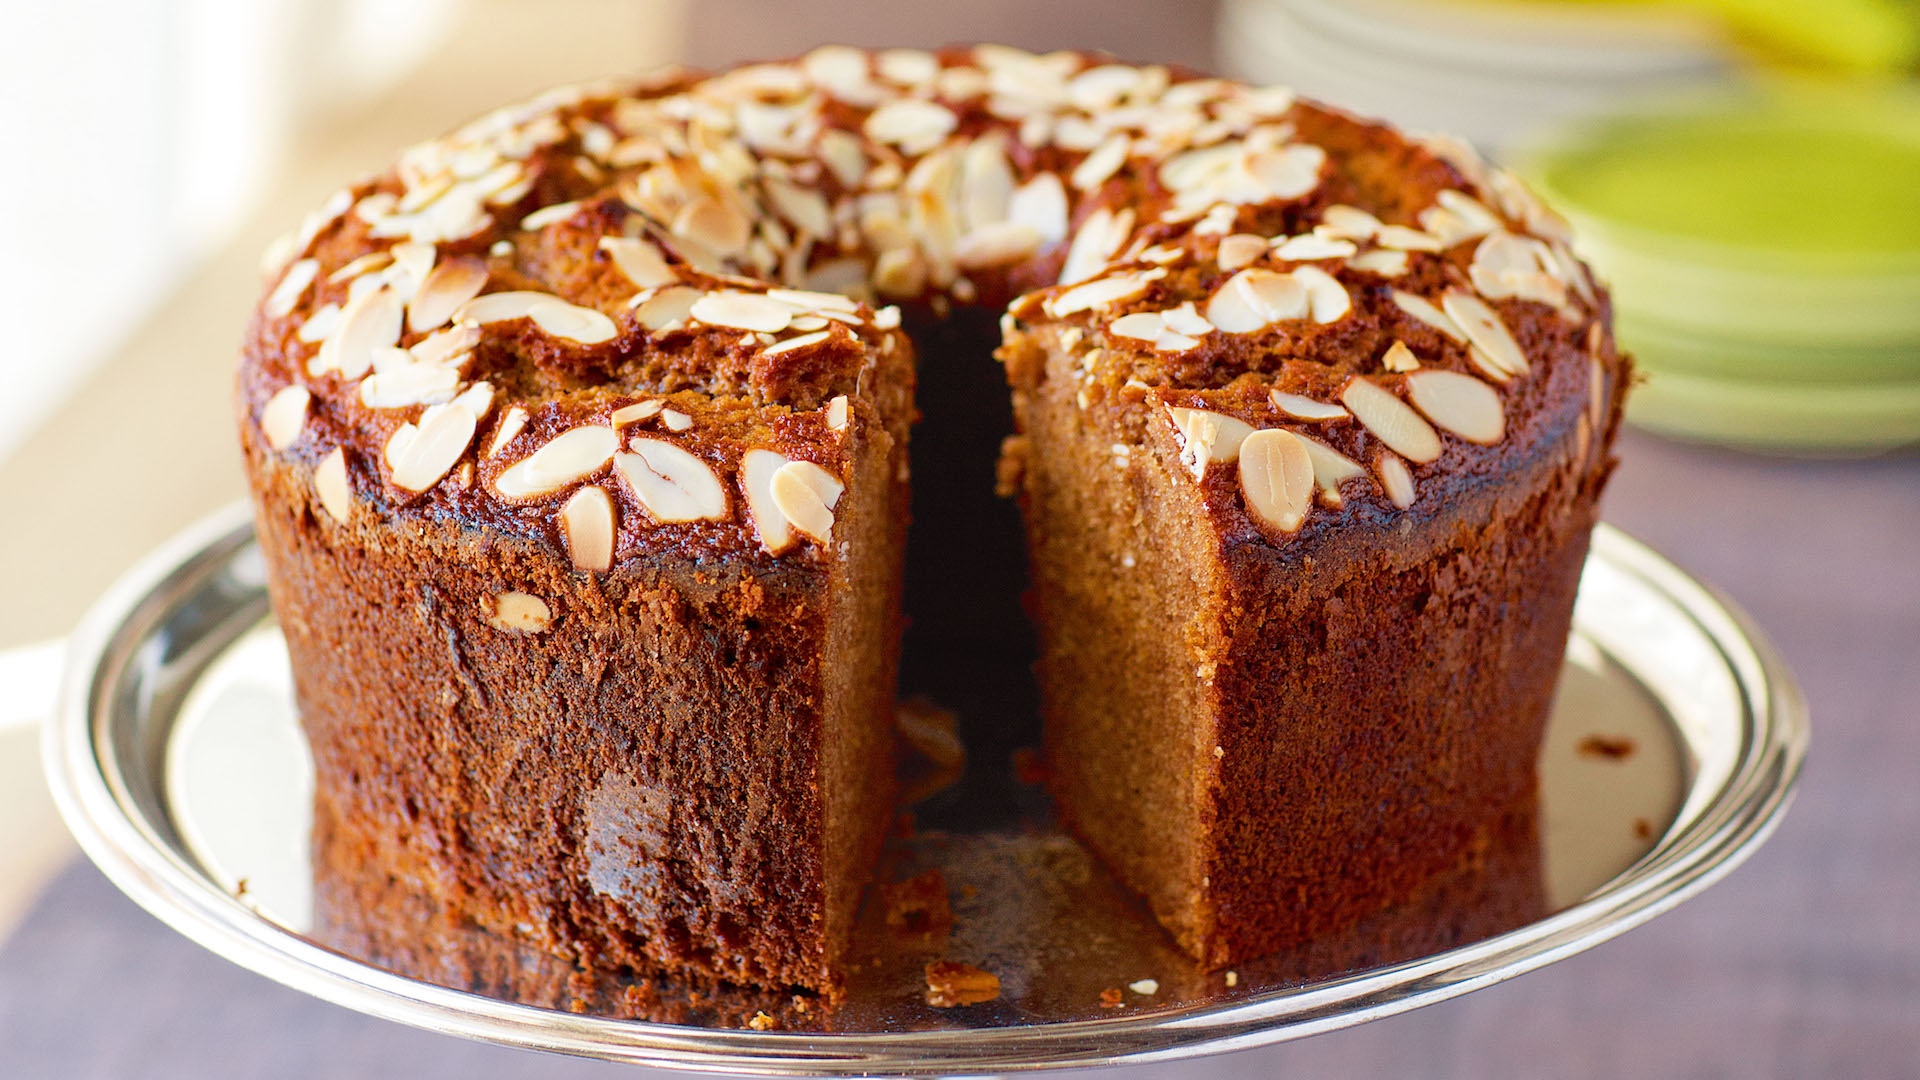 Ina Garten Chocolate Orange Cake Recipe